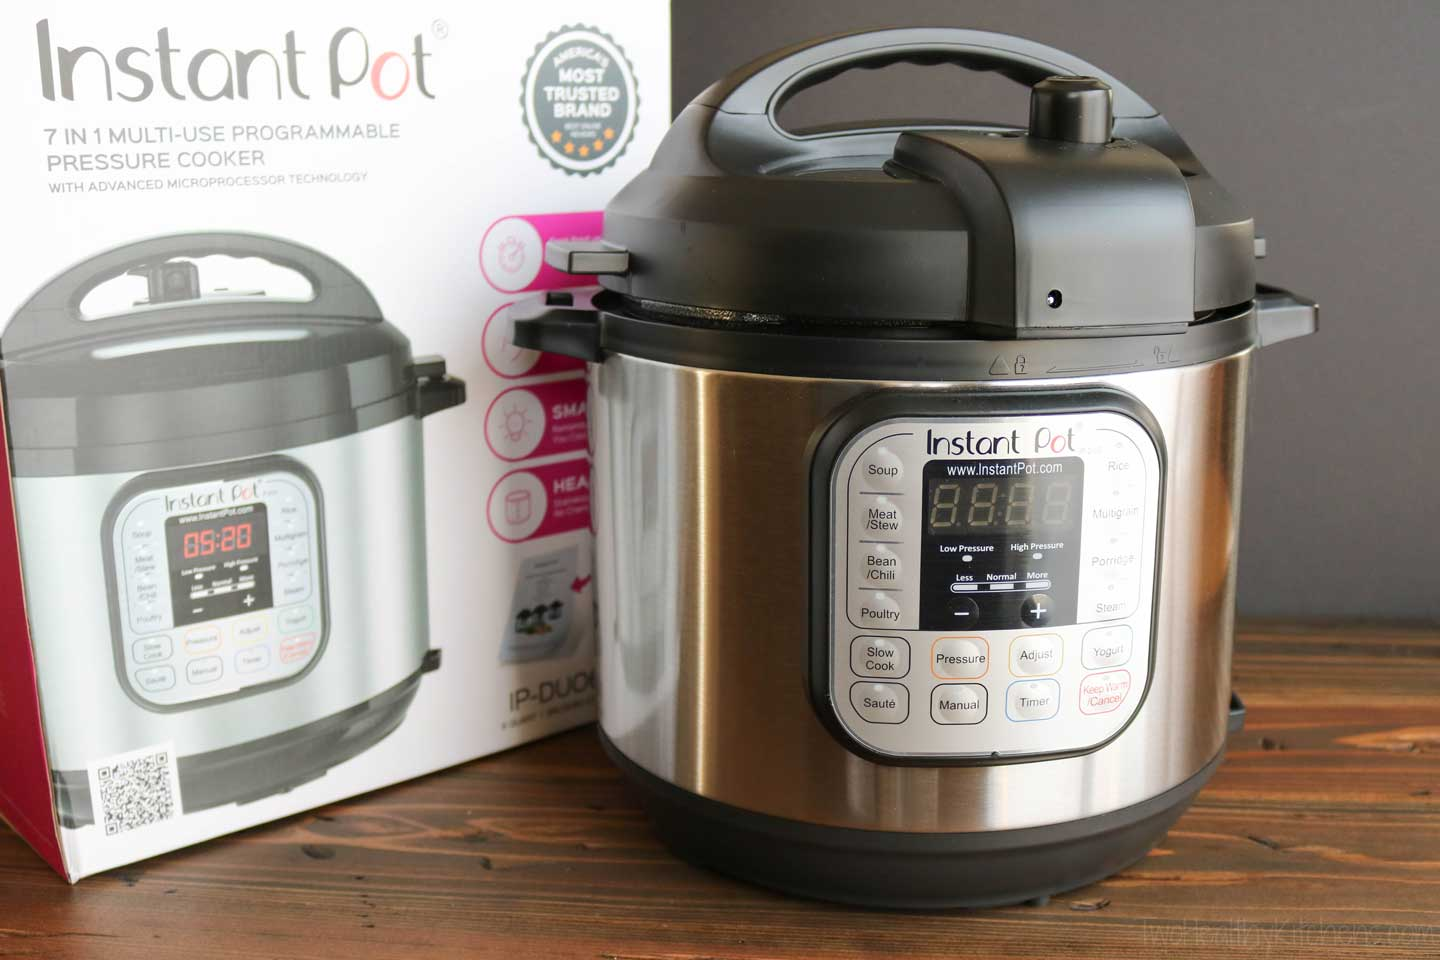 Instant Pot 7-in-1 model DUO60, displayed with box